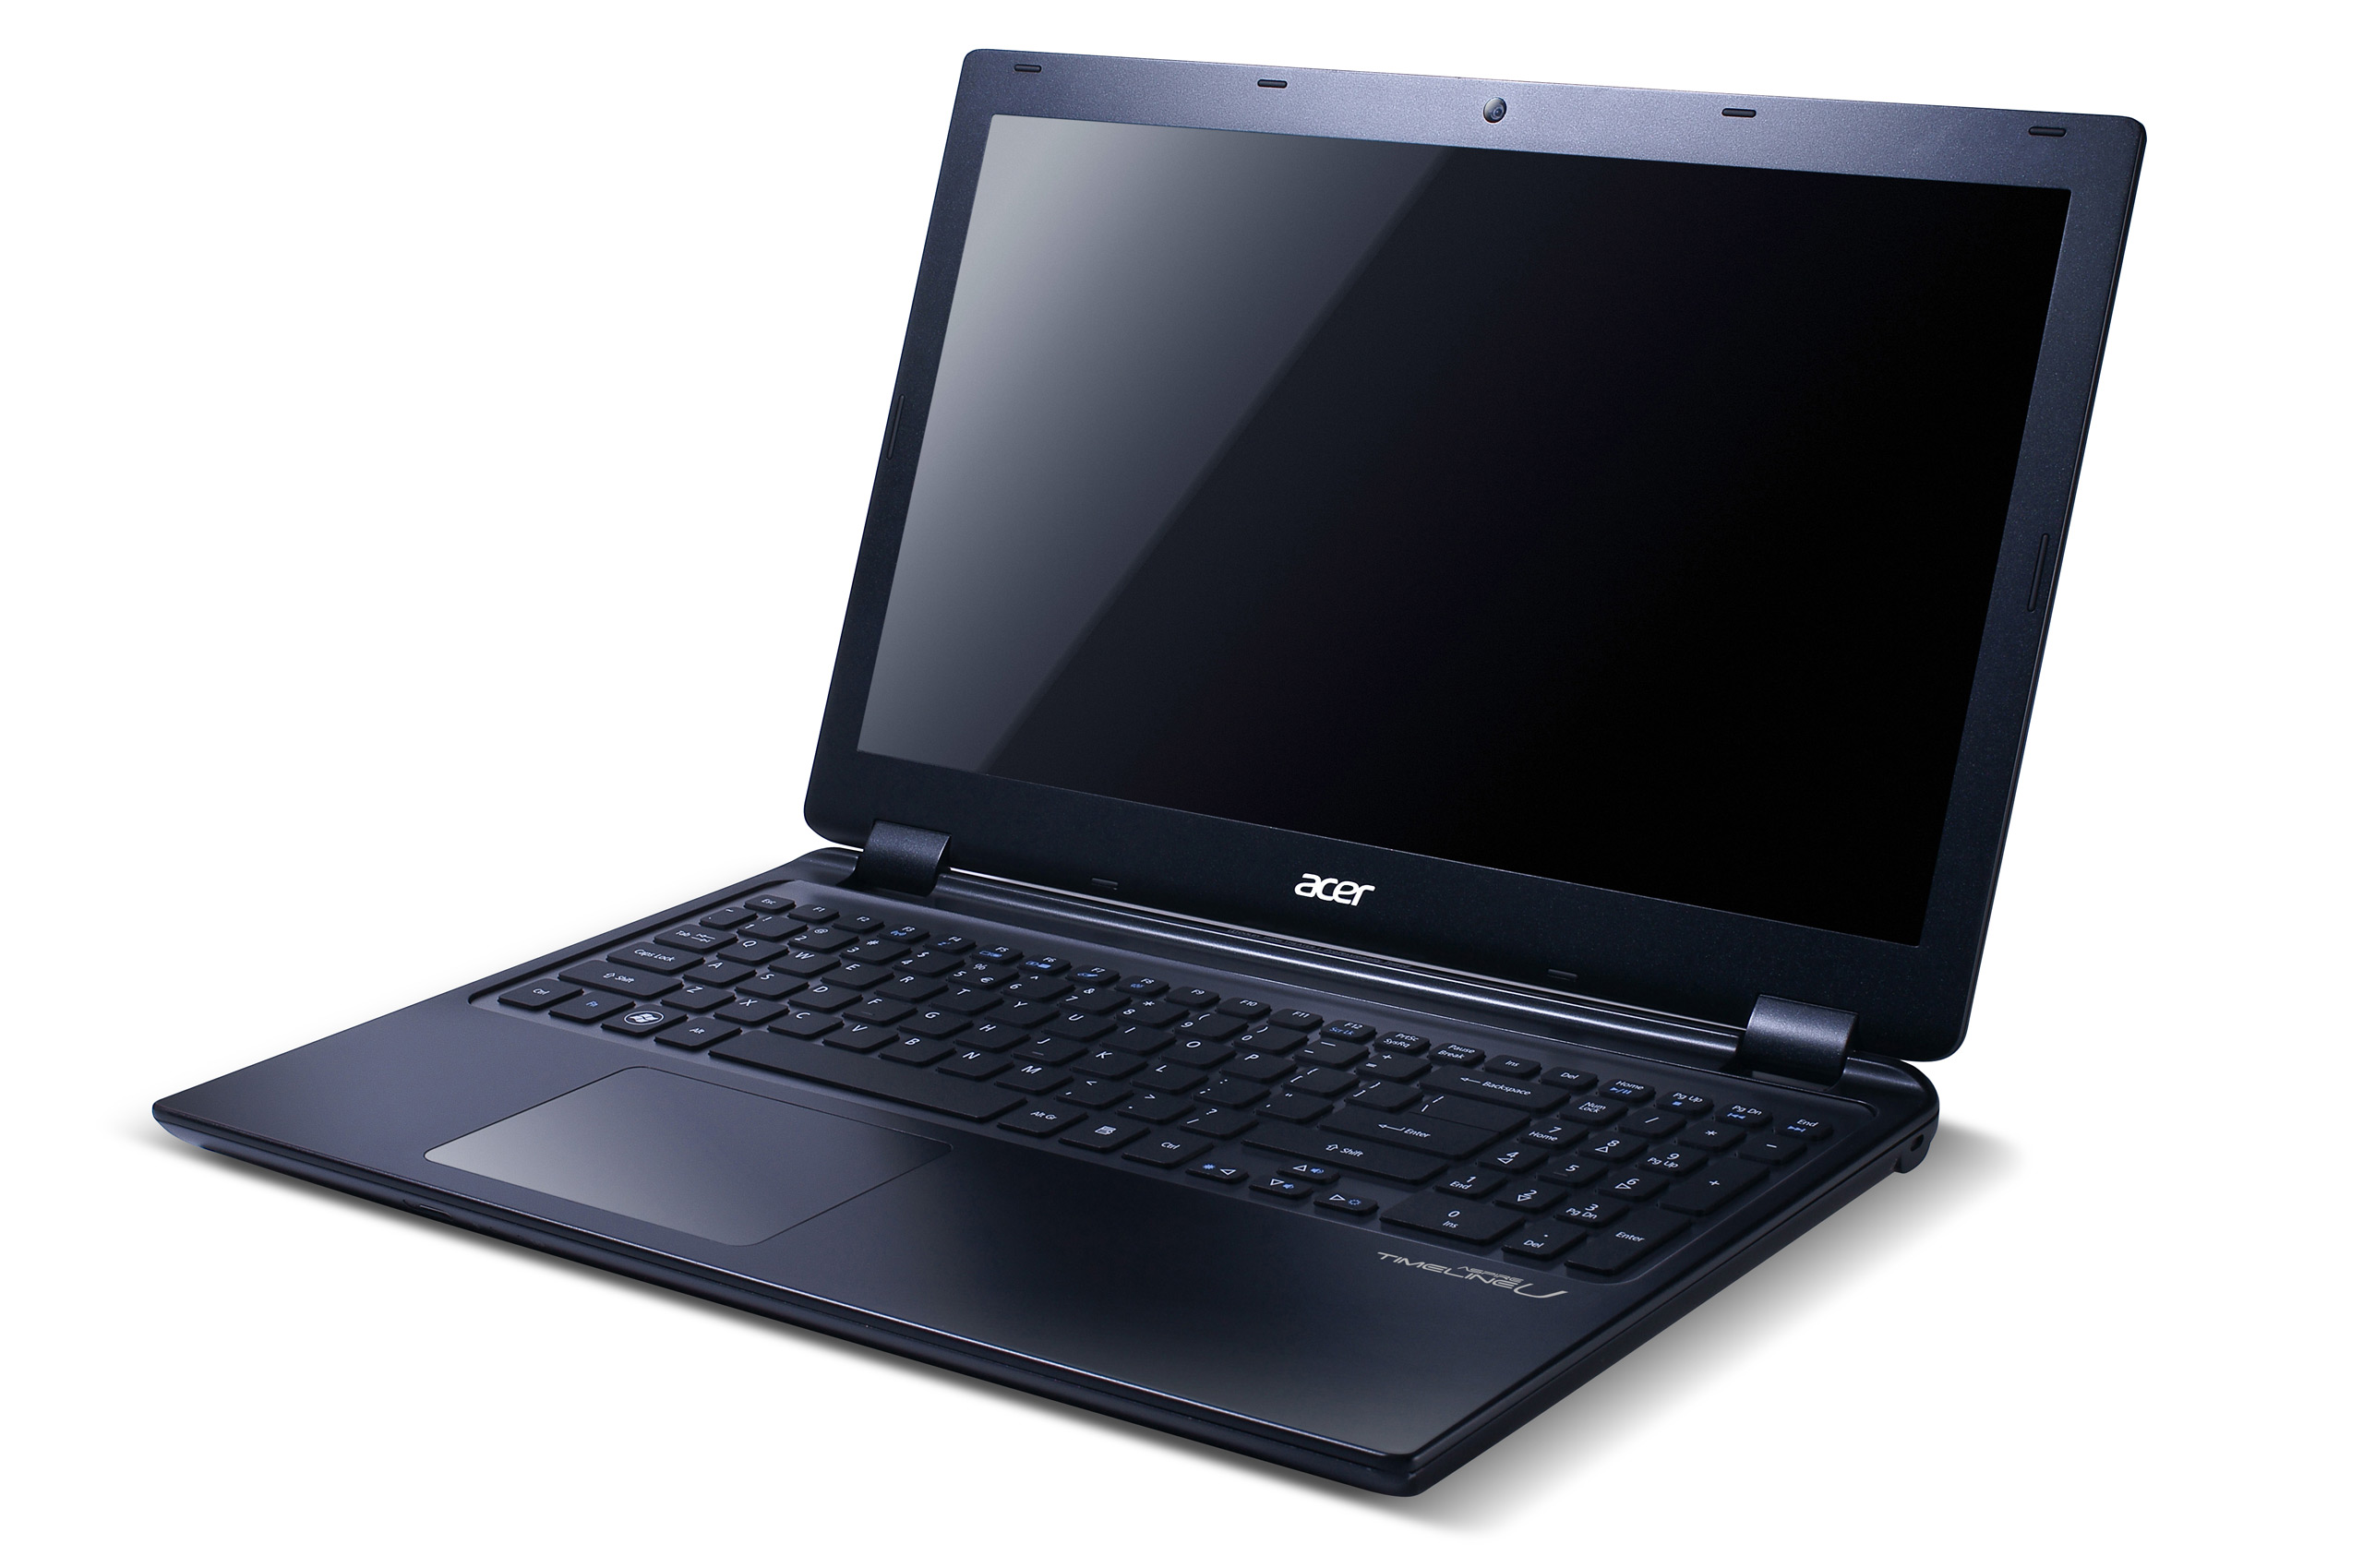 acer-aspire-timeline-ultra-m3-laptop